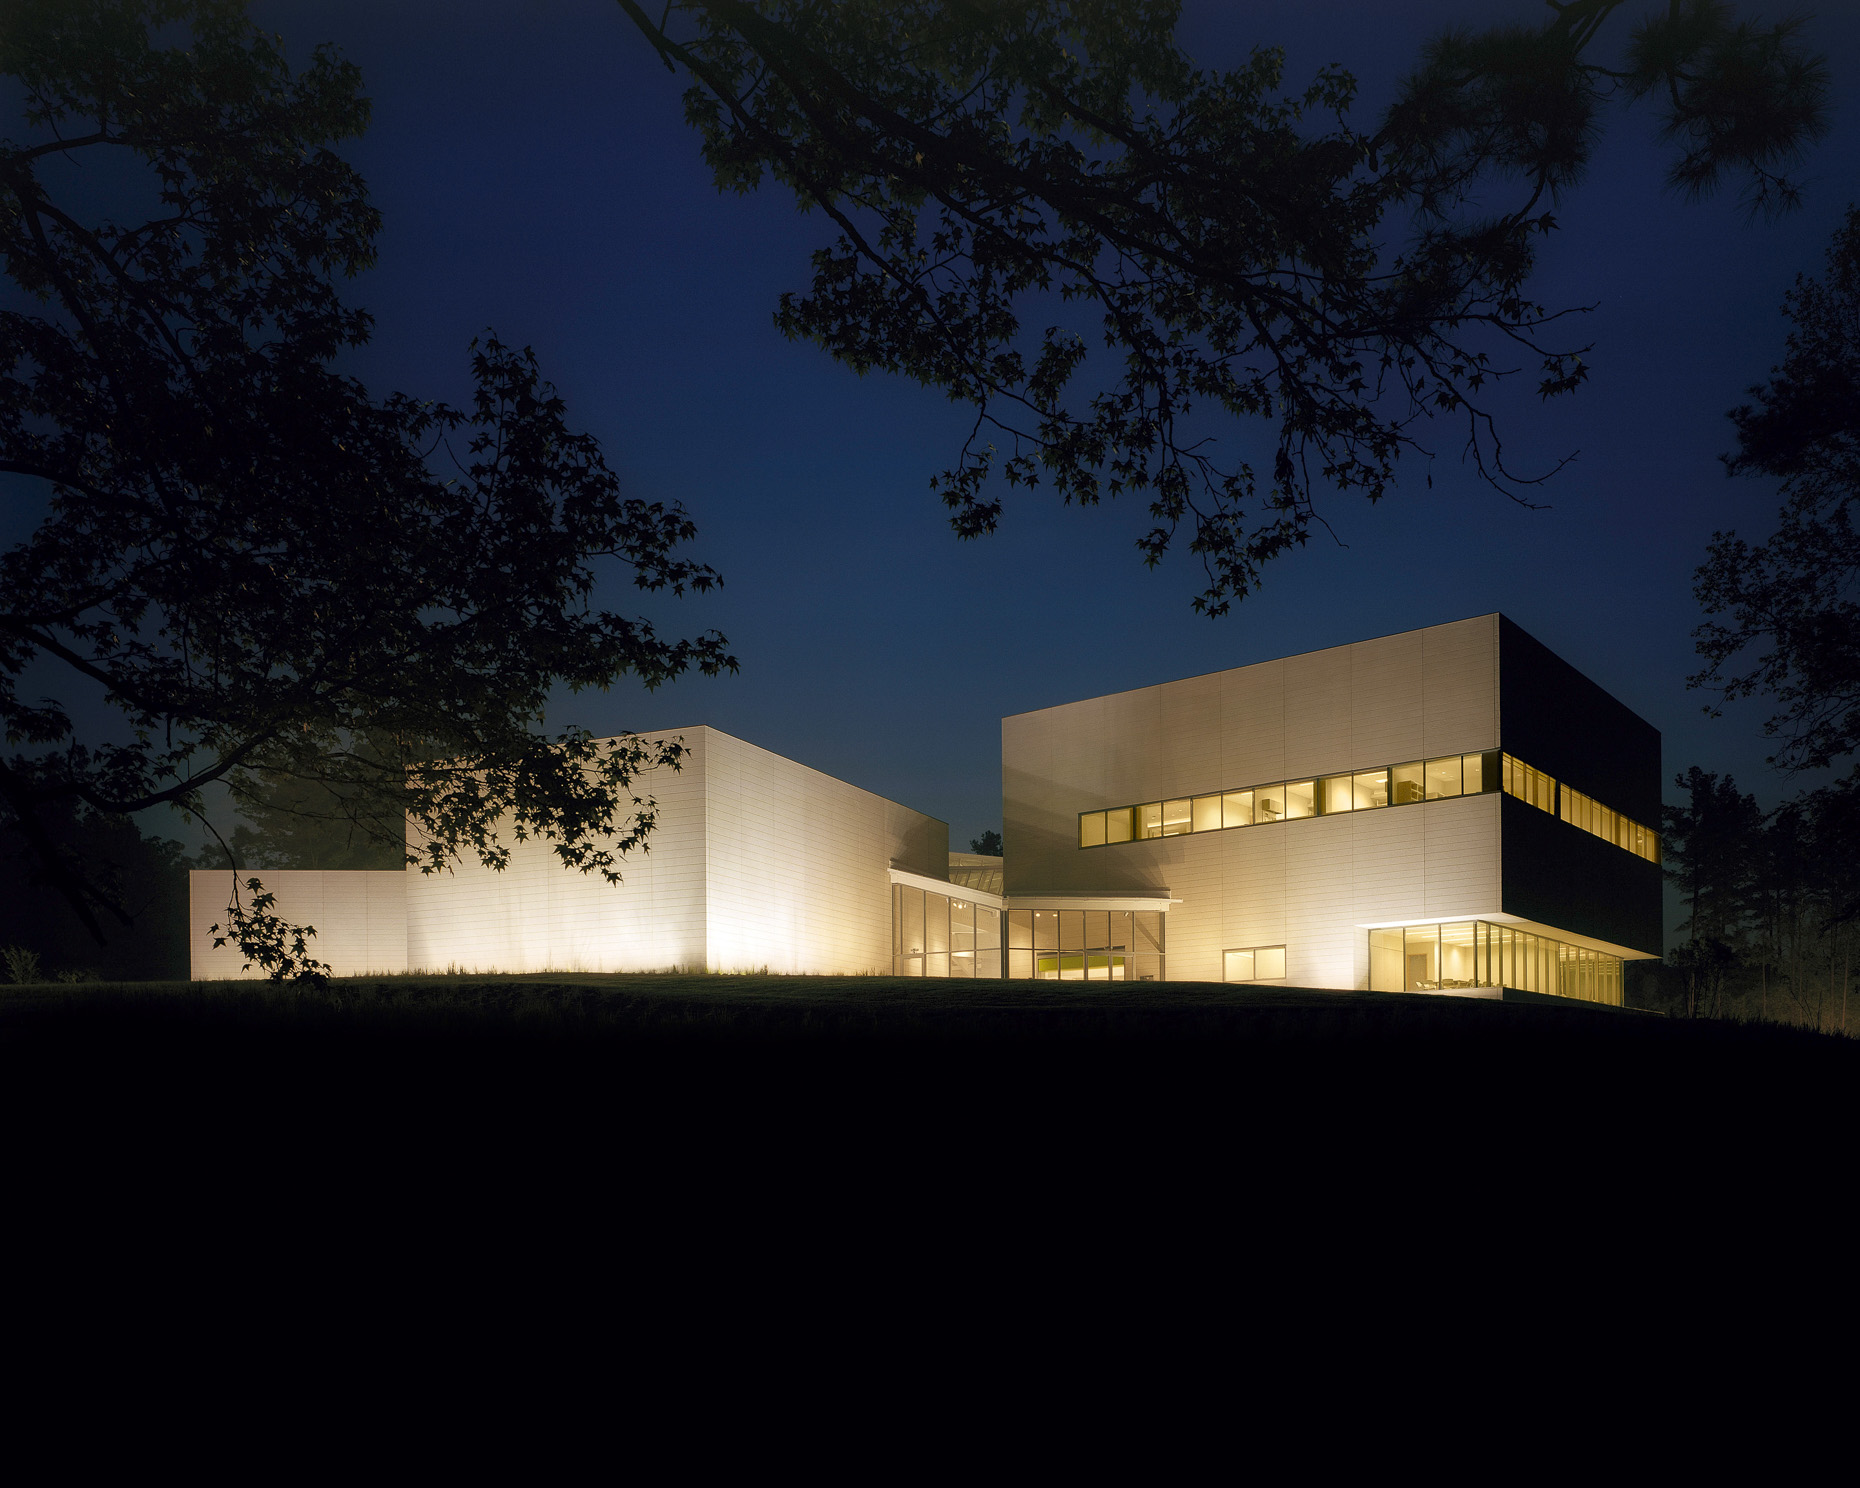 Duke University Nasher Museum of Art by Rafael Viñoly Architects photographed by Brad Feinknopf based in Columbus, Ohio